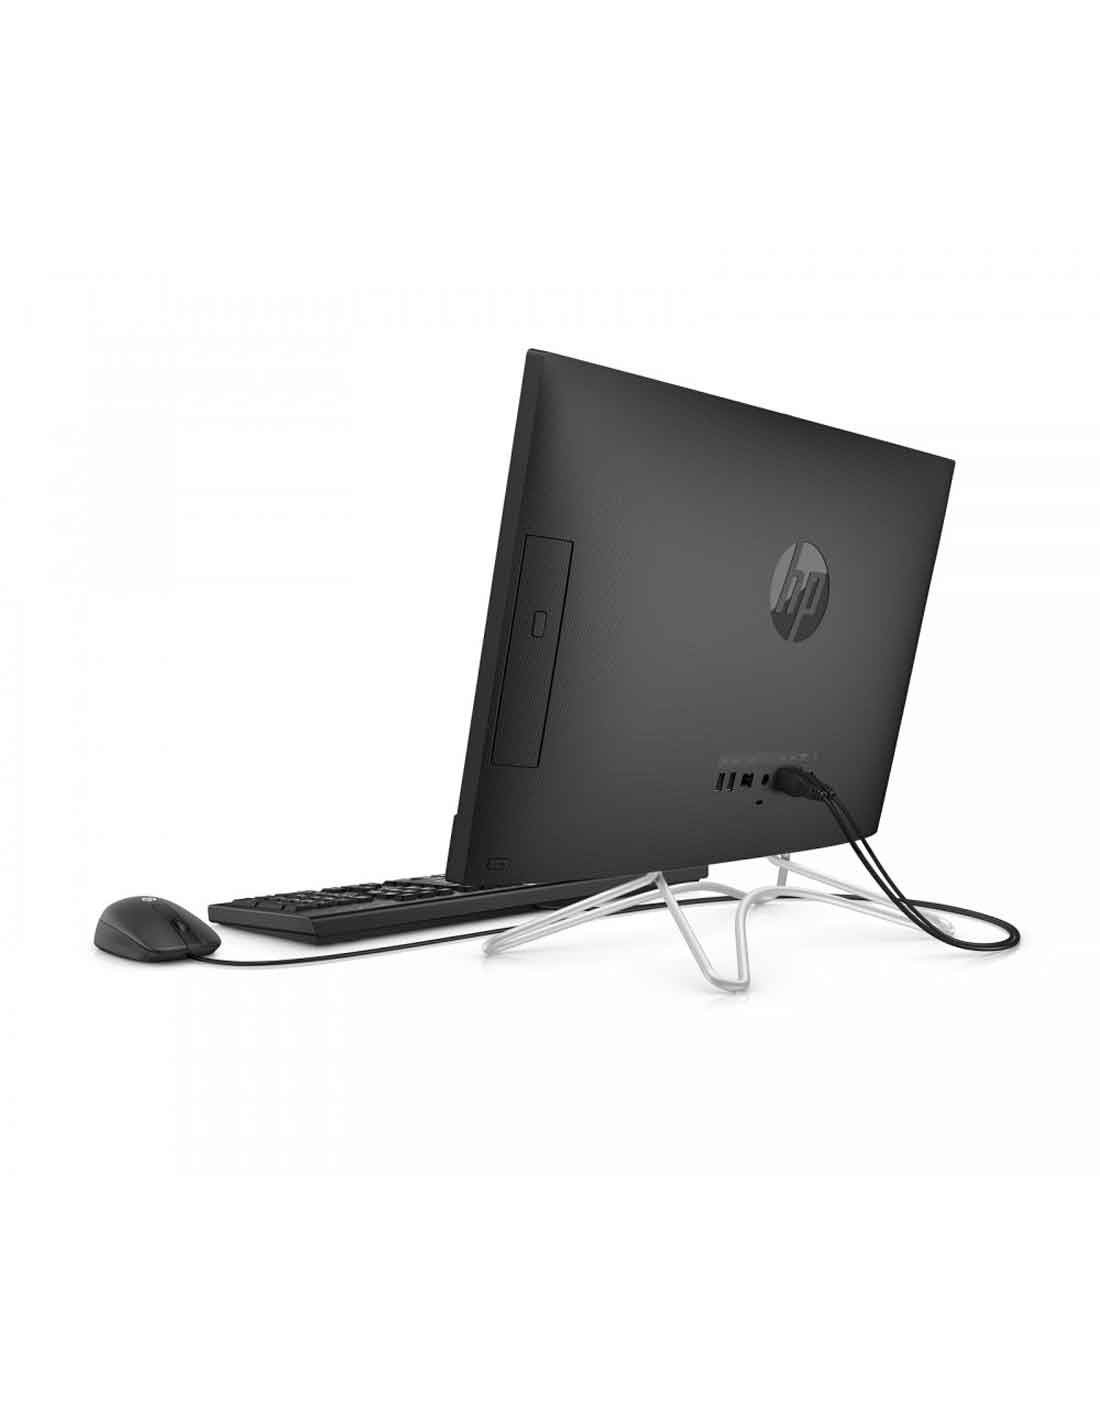 HP ProOne 200 G3 All-in-One Core i5 at the cheapest price and fast free delivery in Dubai